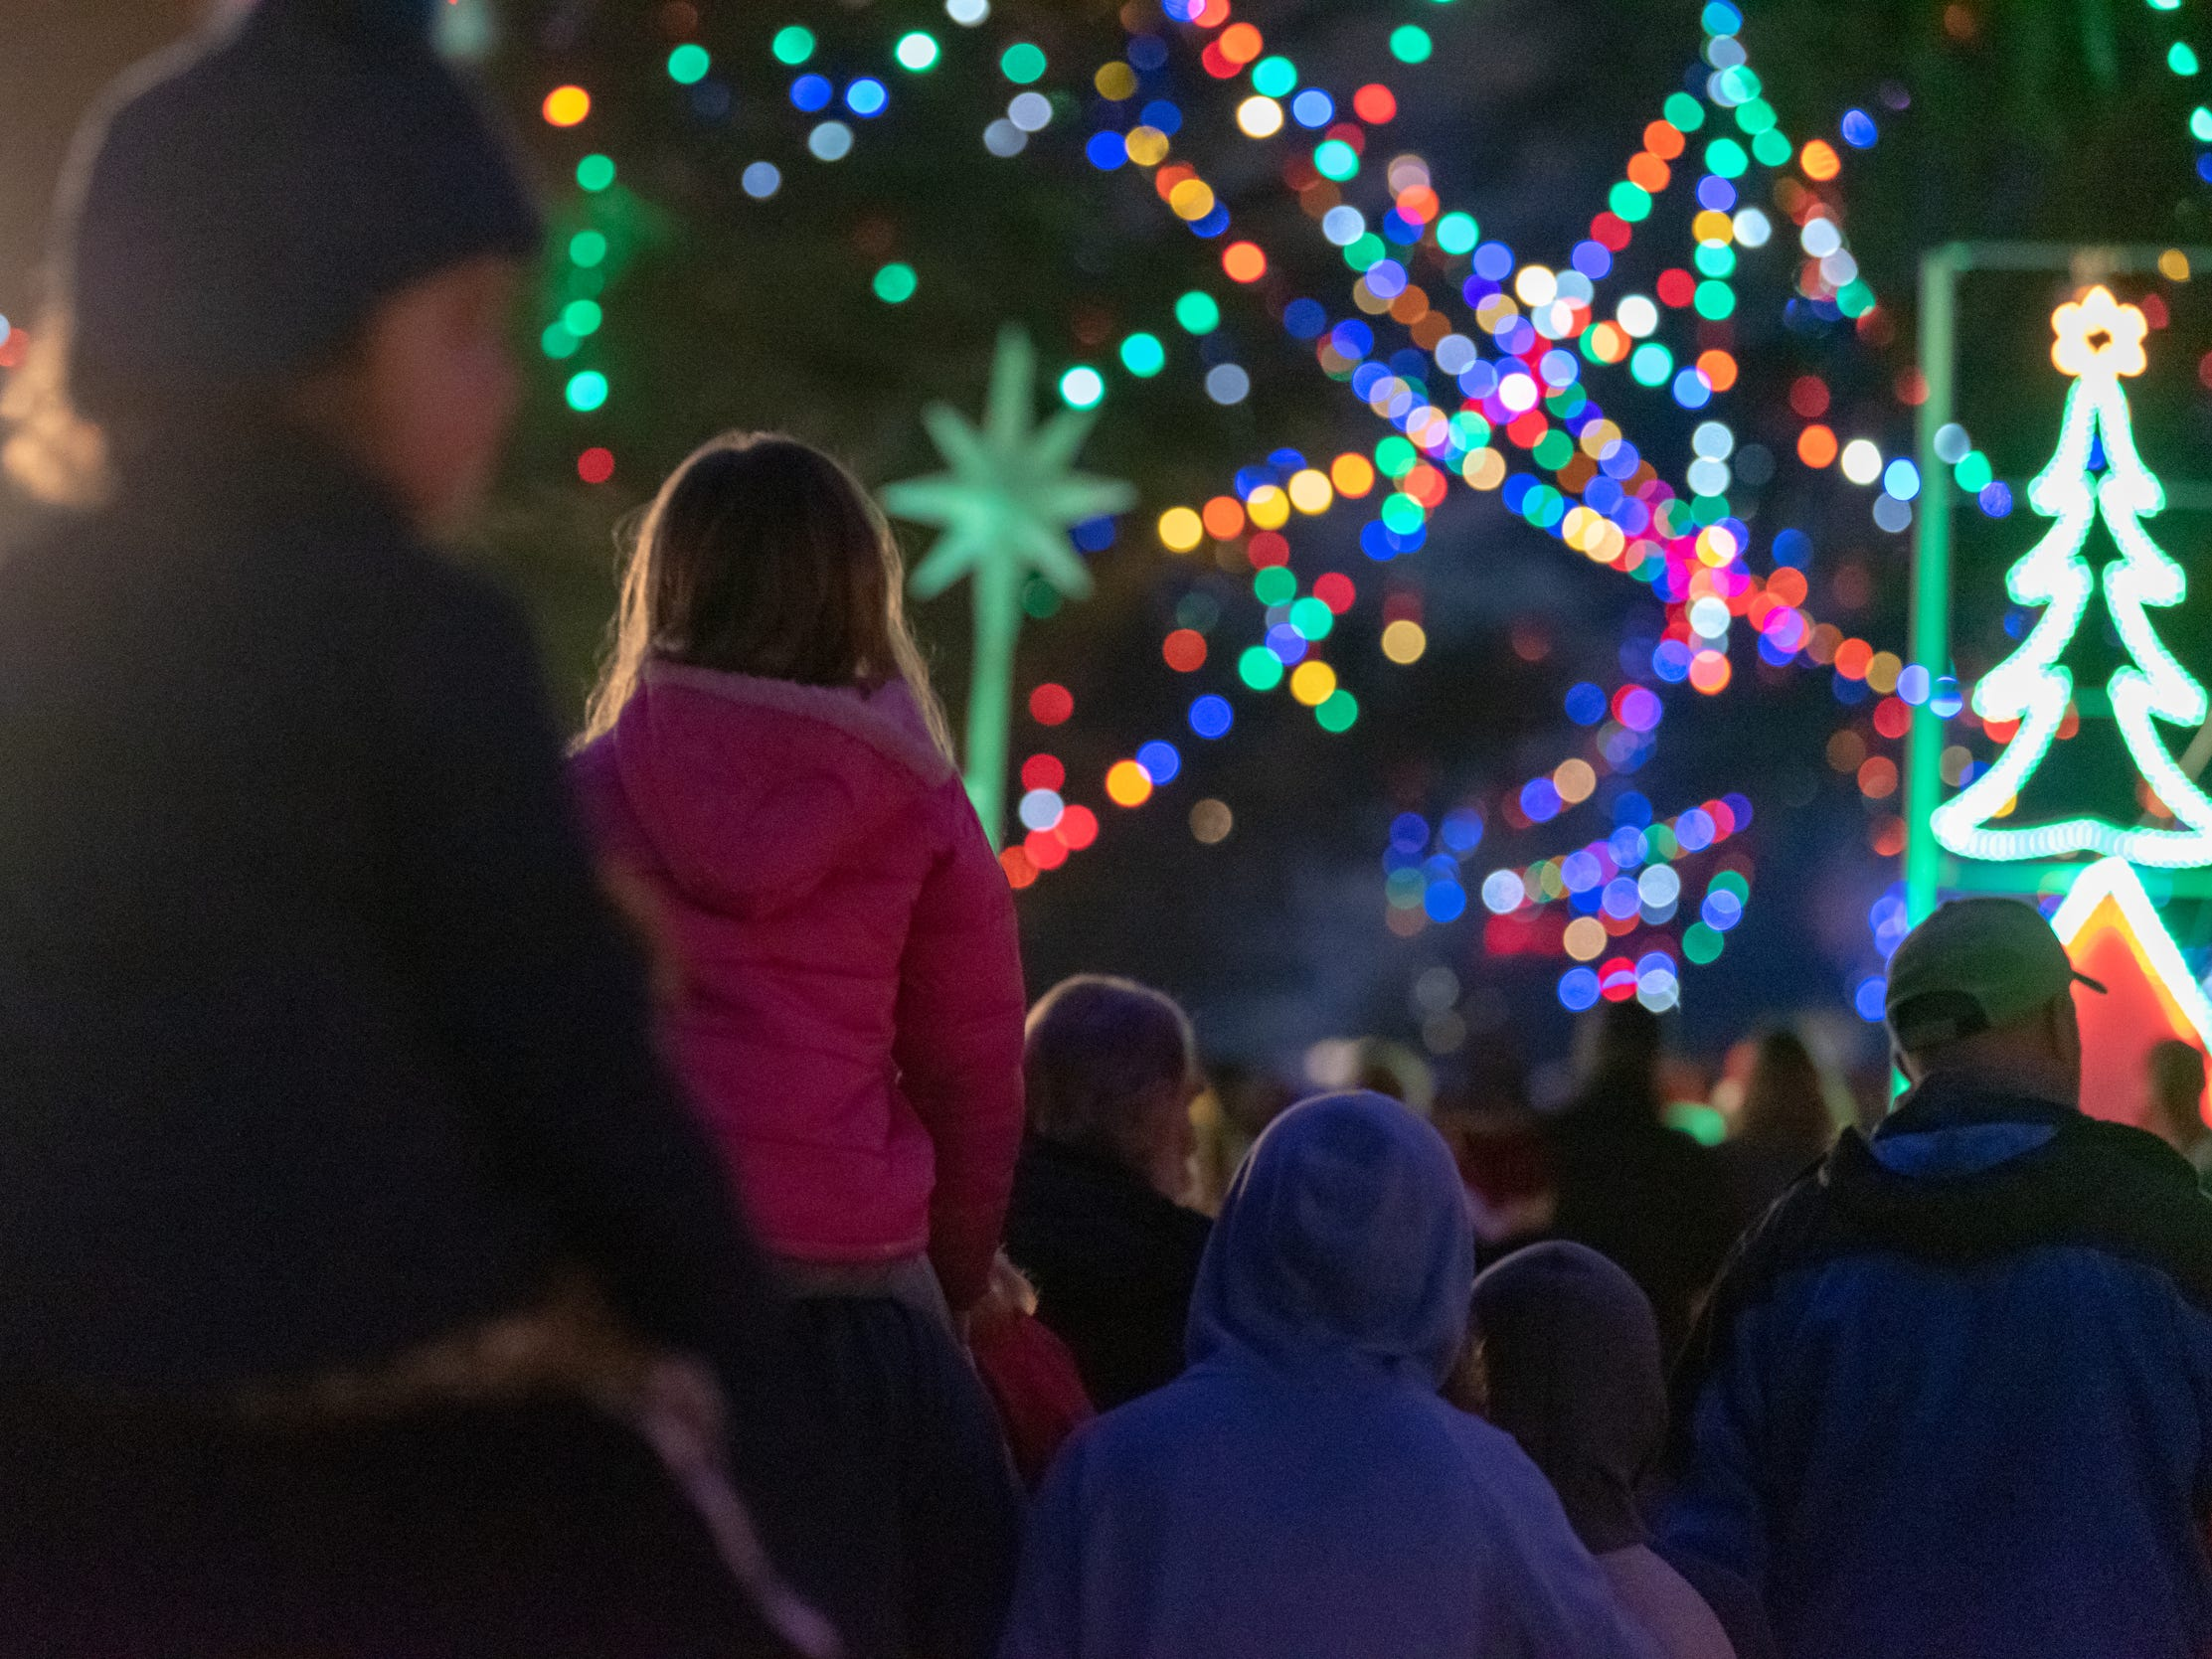 Thousands took advantage of the last walk night of the year for Fresno's Christmas Tree Lane on Tuesday, December 11, 2018. Don't worry, there's still plenty of time to drive it. It's been a tradition since 1922 with no sign of slowing down.